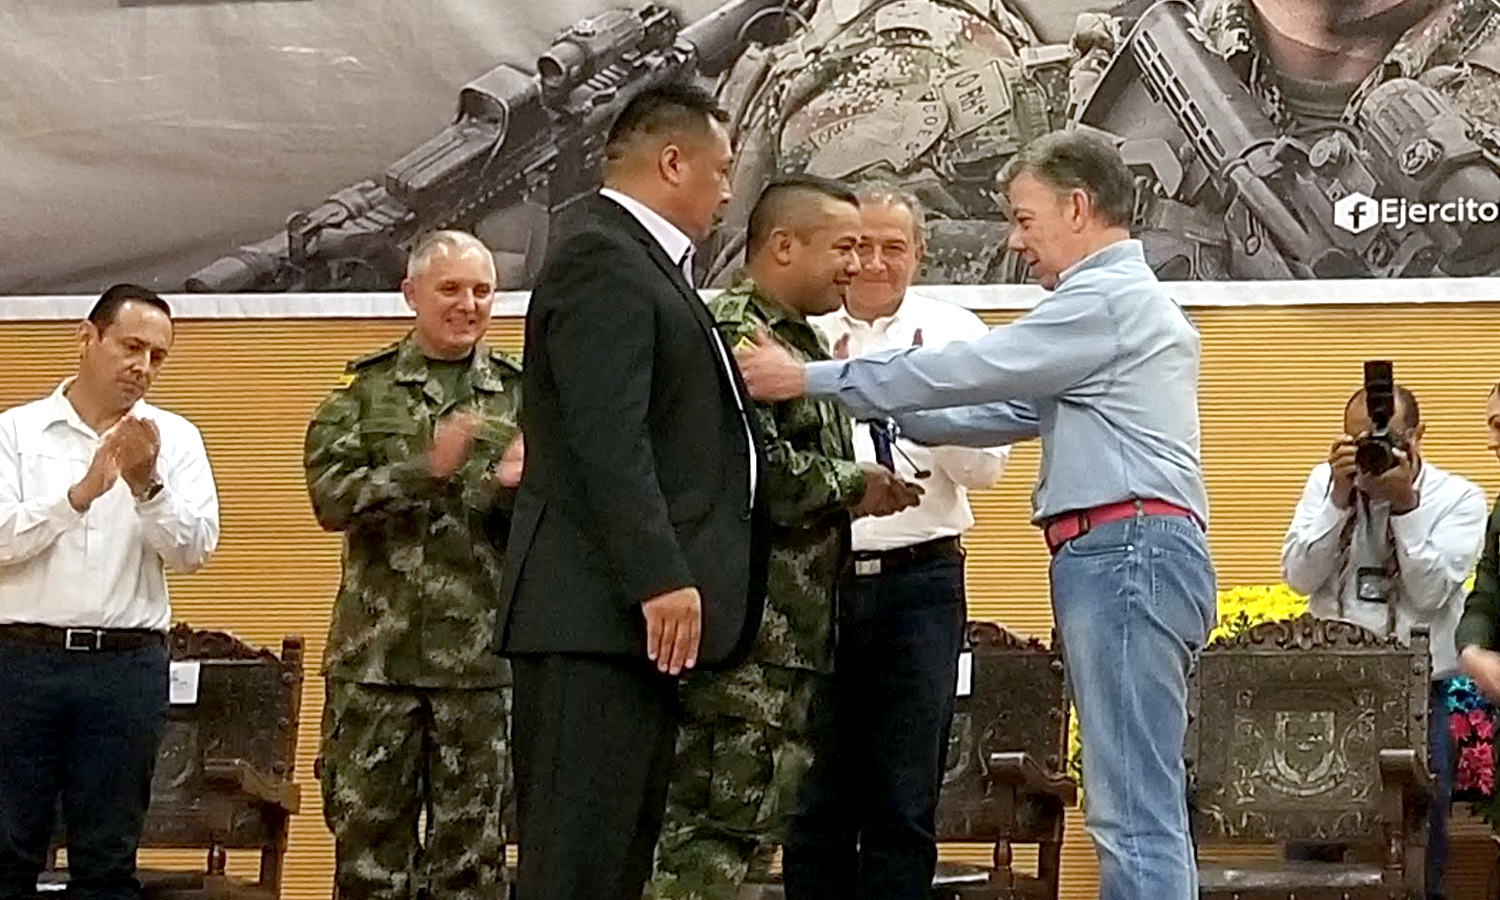 Adelmo receiving an award from the President of Colombia, for his advocacy work with landmine survivors